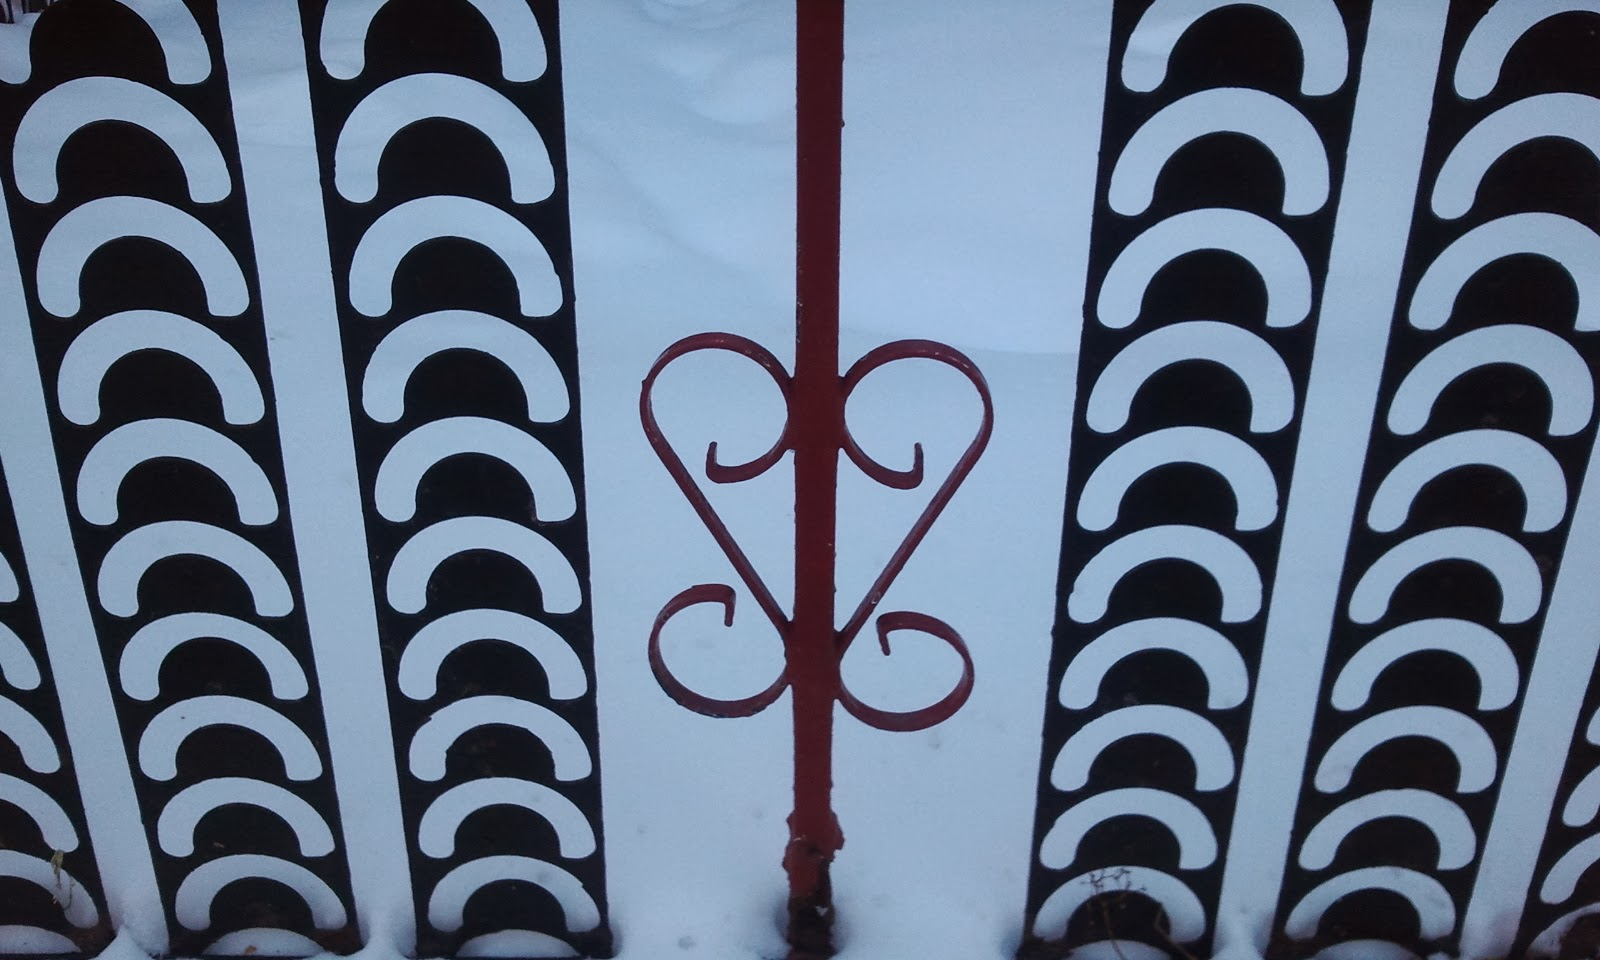 heart-shaped black and red fence